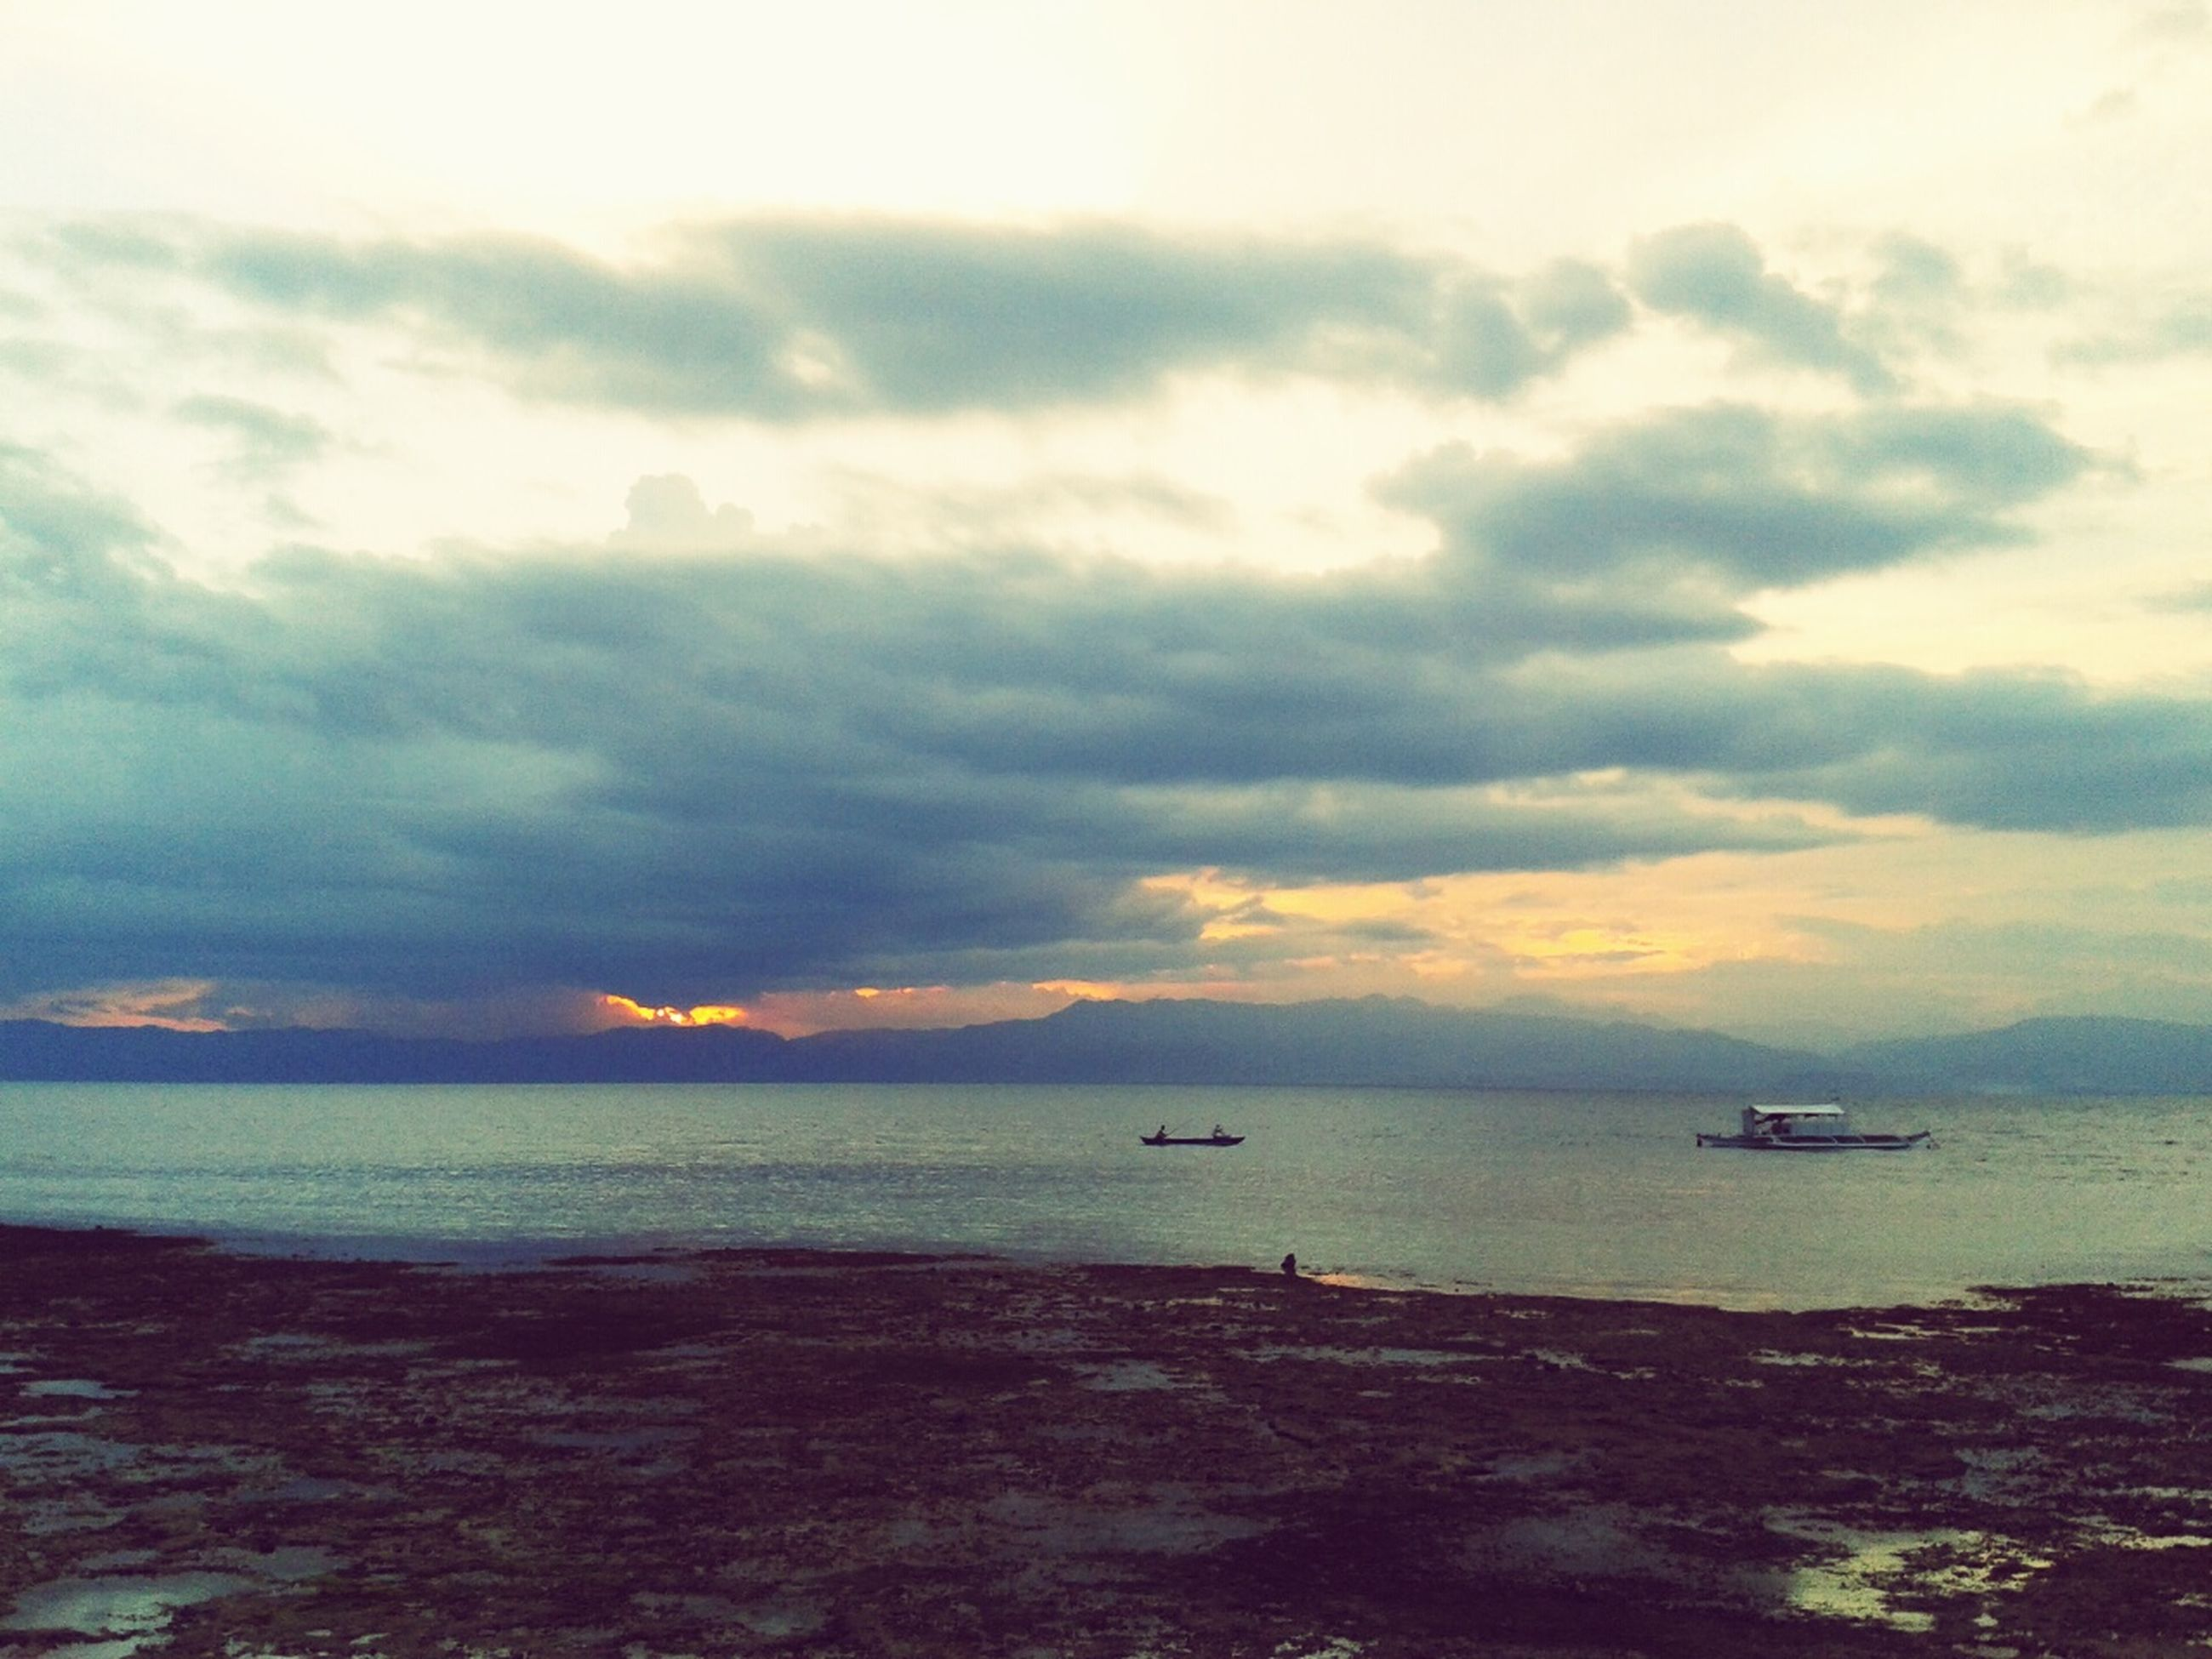 sea, horizon over water, water, sky, nautical vessel, transportation, scenics, boat, tranquil scene, mode of transport, tranquility, beauty in nature, sunset, cloud - sky, nature, beach, cloudy, idyllic, shore, cloud